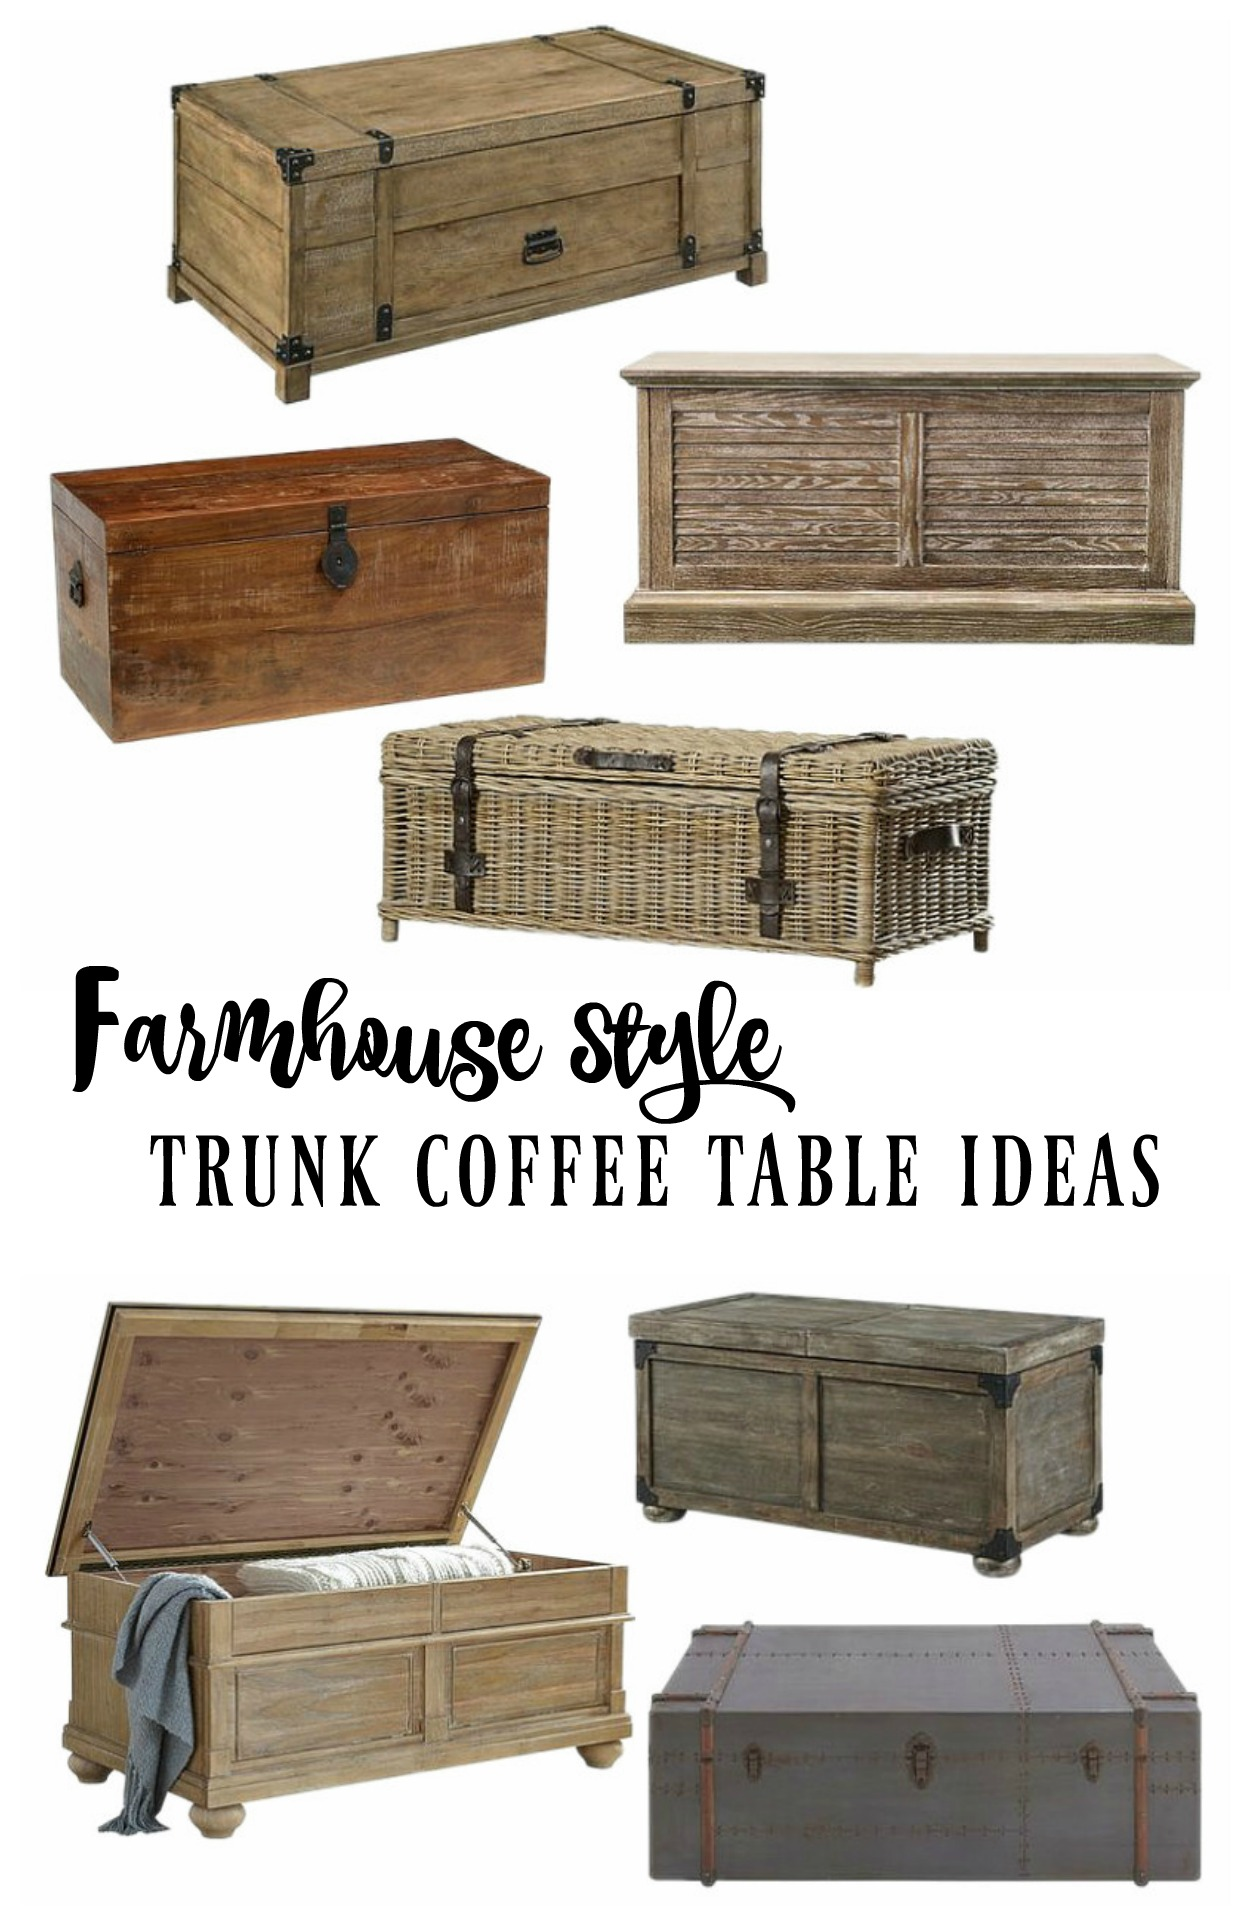 Farmhouse Style Wooden Trunk Coffee Table Ideas Rooms For Rent blog